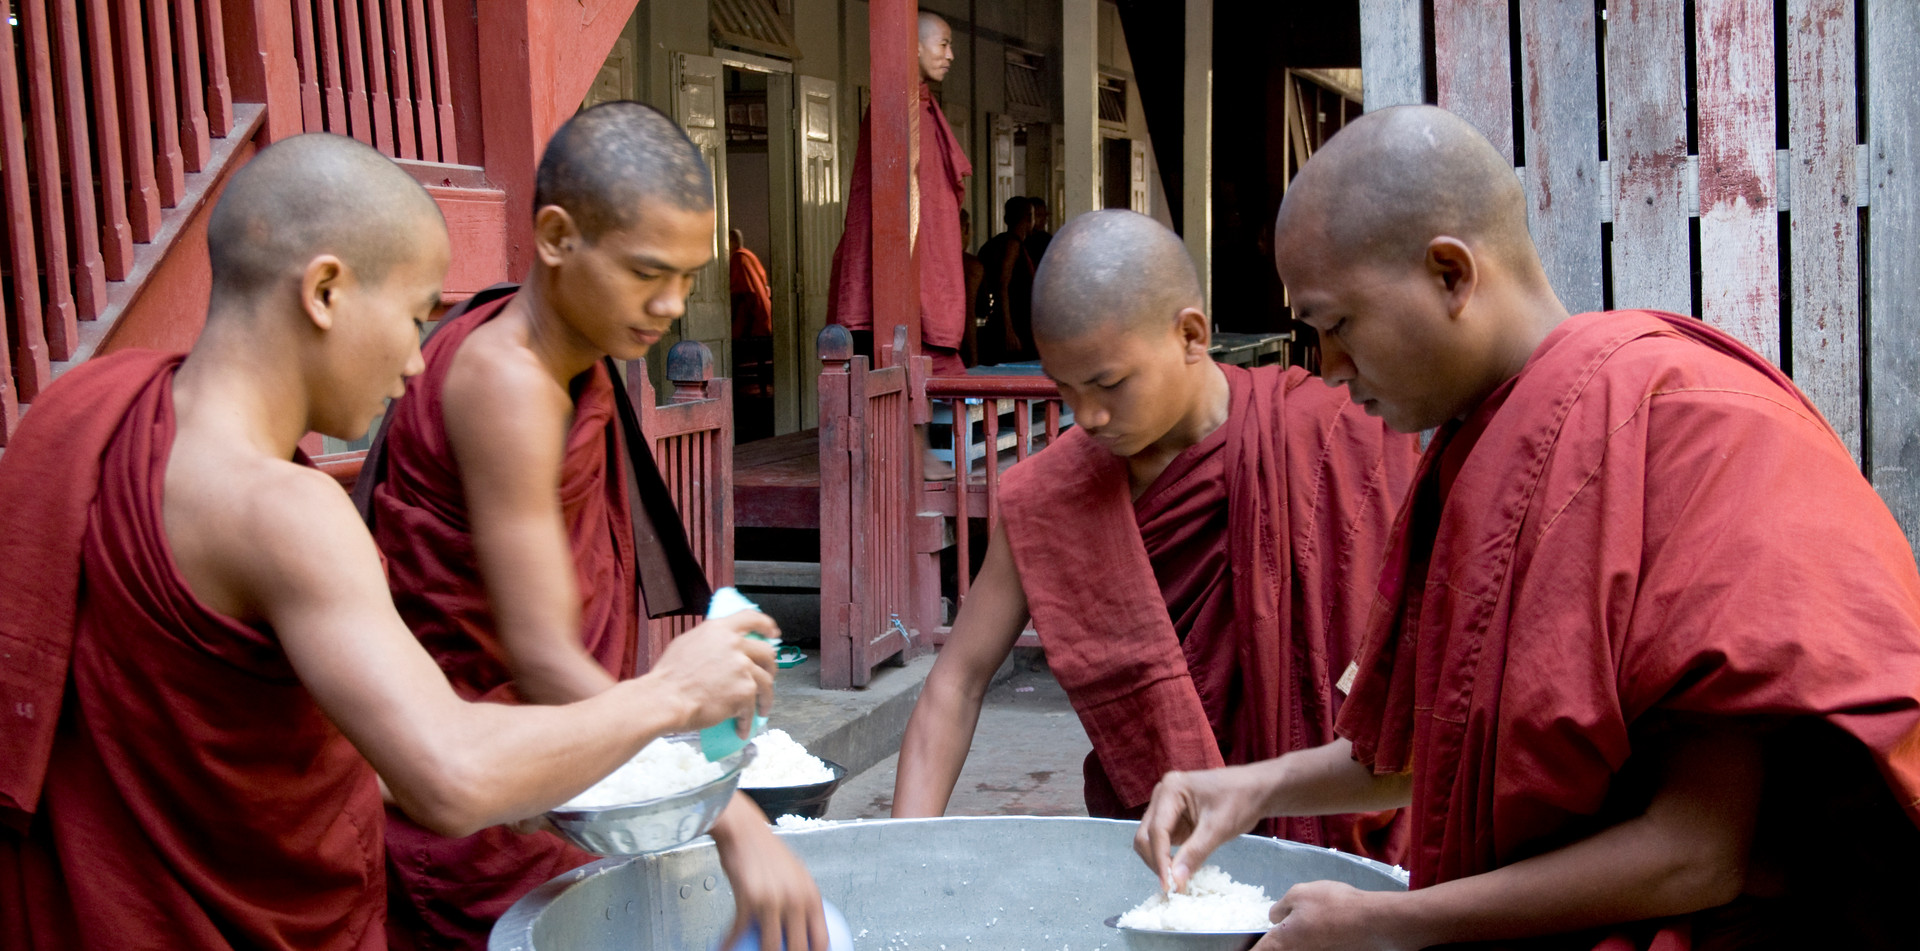 Buddhist monks sharing rice at a monastery at Katha, where George Orwell's 'Burmese Days' was set